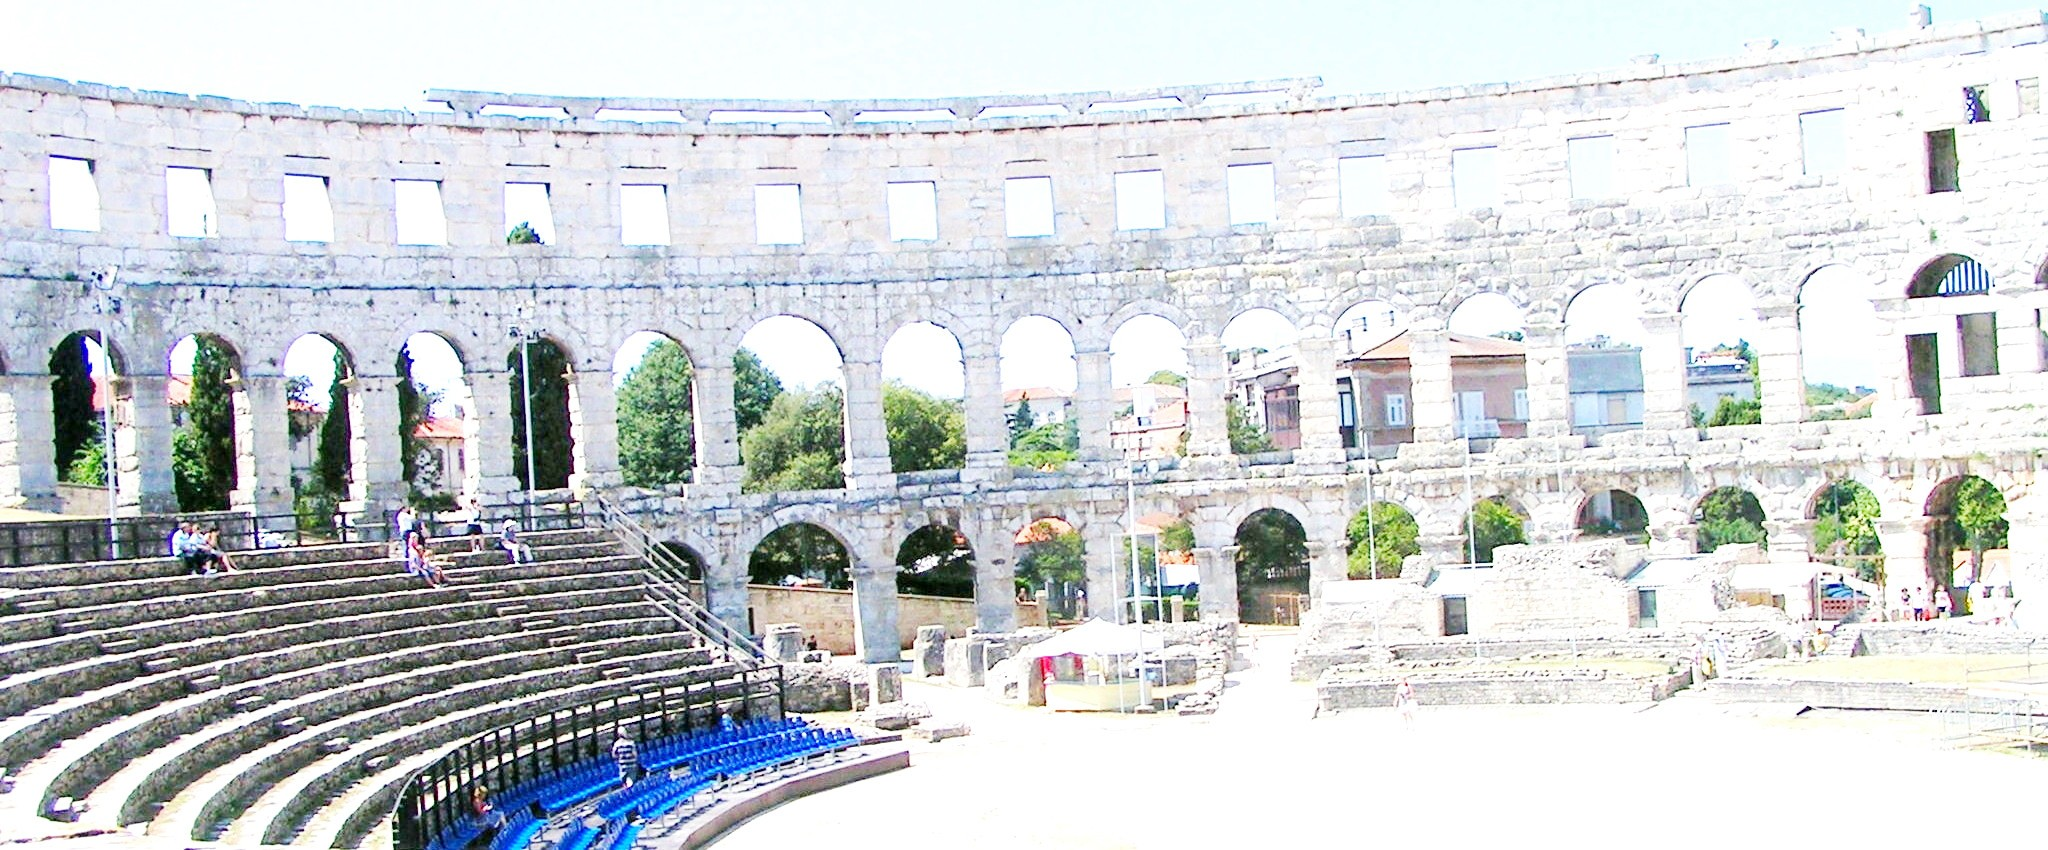 Istria Pula amphitheater built during the Roman Empire